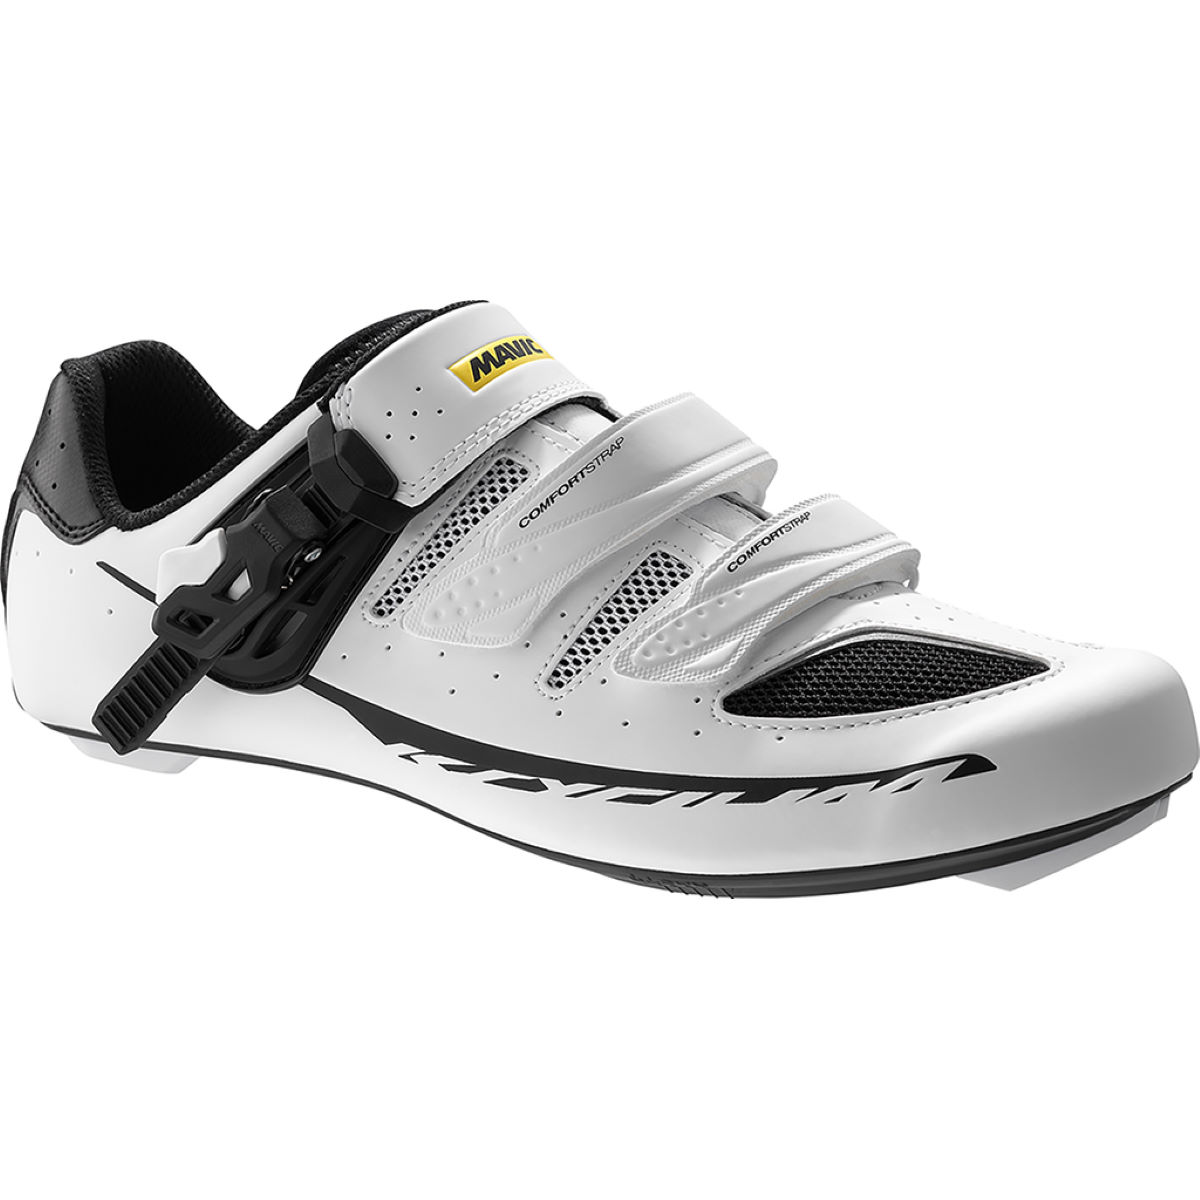 Chaussures de route Mavic Ksyrium Elite Maxi Fit II - 13 UK Blanc